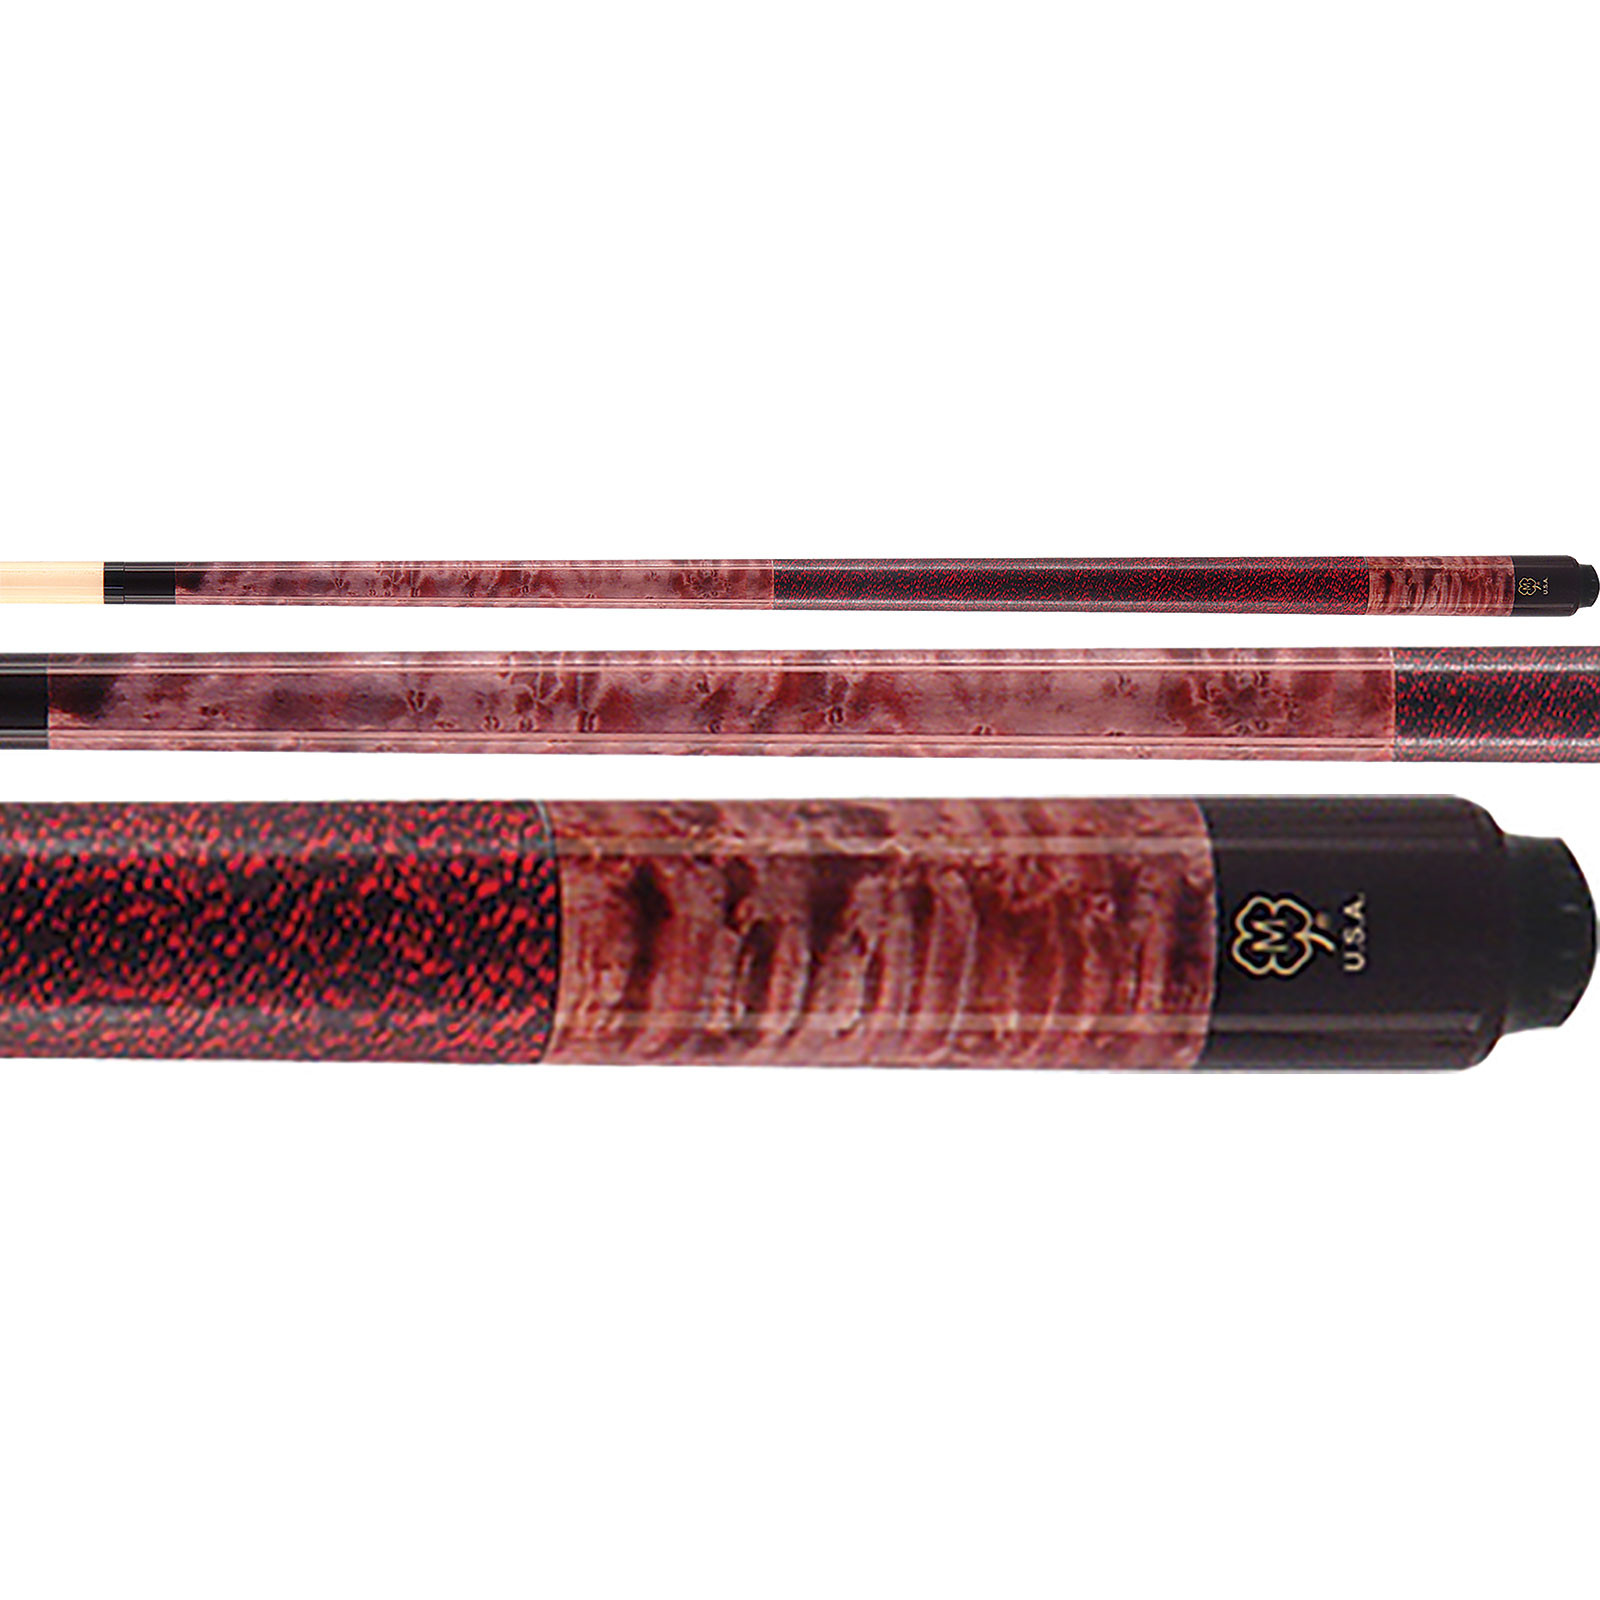 Mcdermott Gs09 Gs Series Red Pool Cue